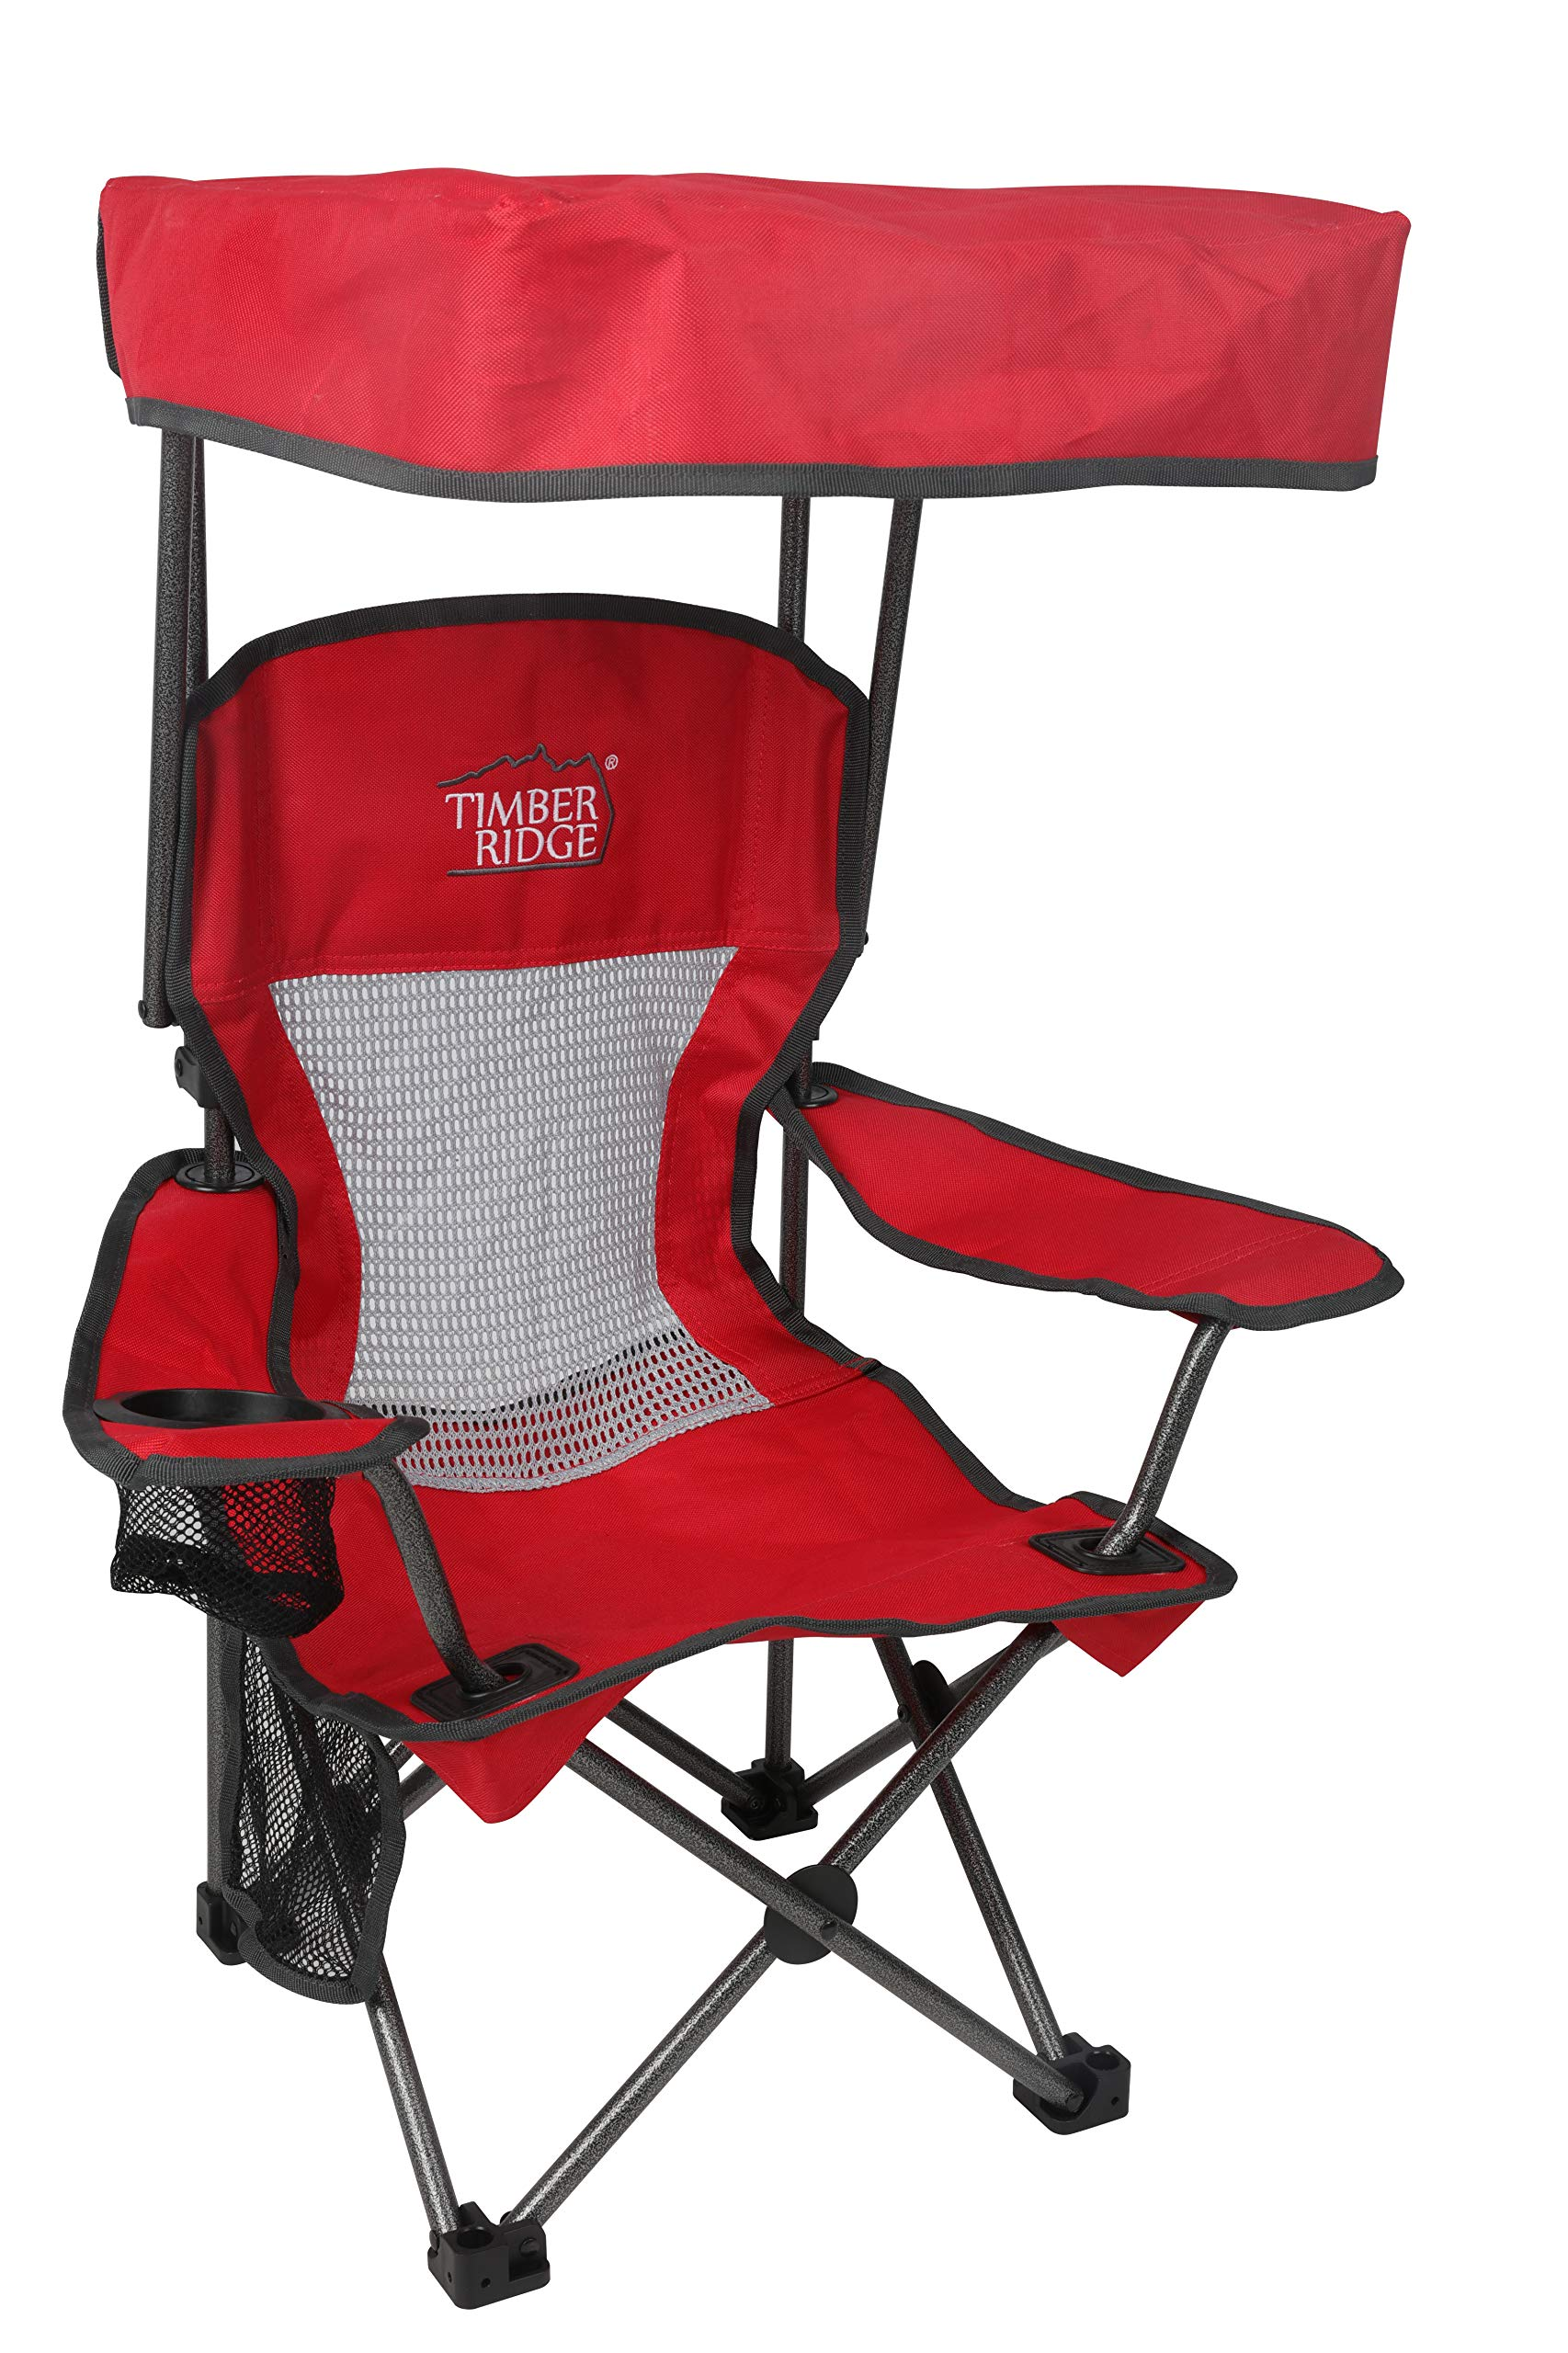 Westfield Outdoor Kid's Folding Chair with Canopy and Durable Carry Bag Red